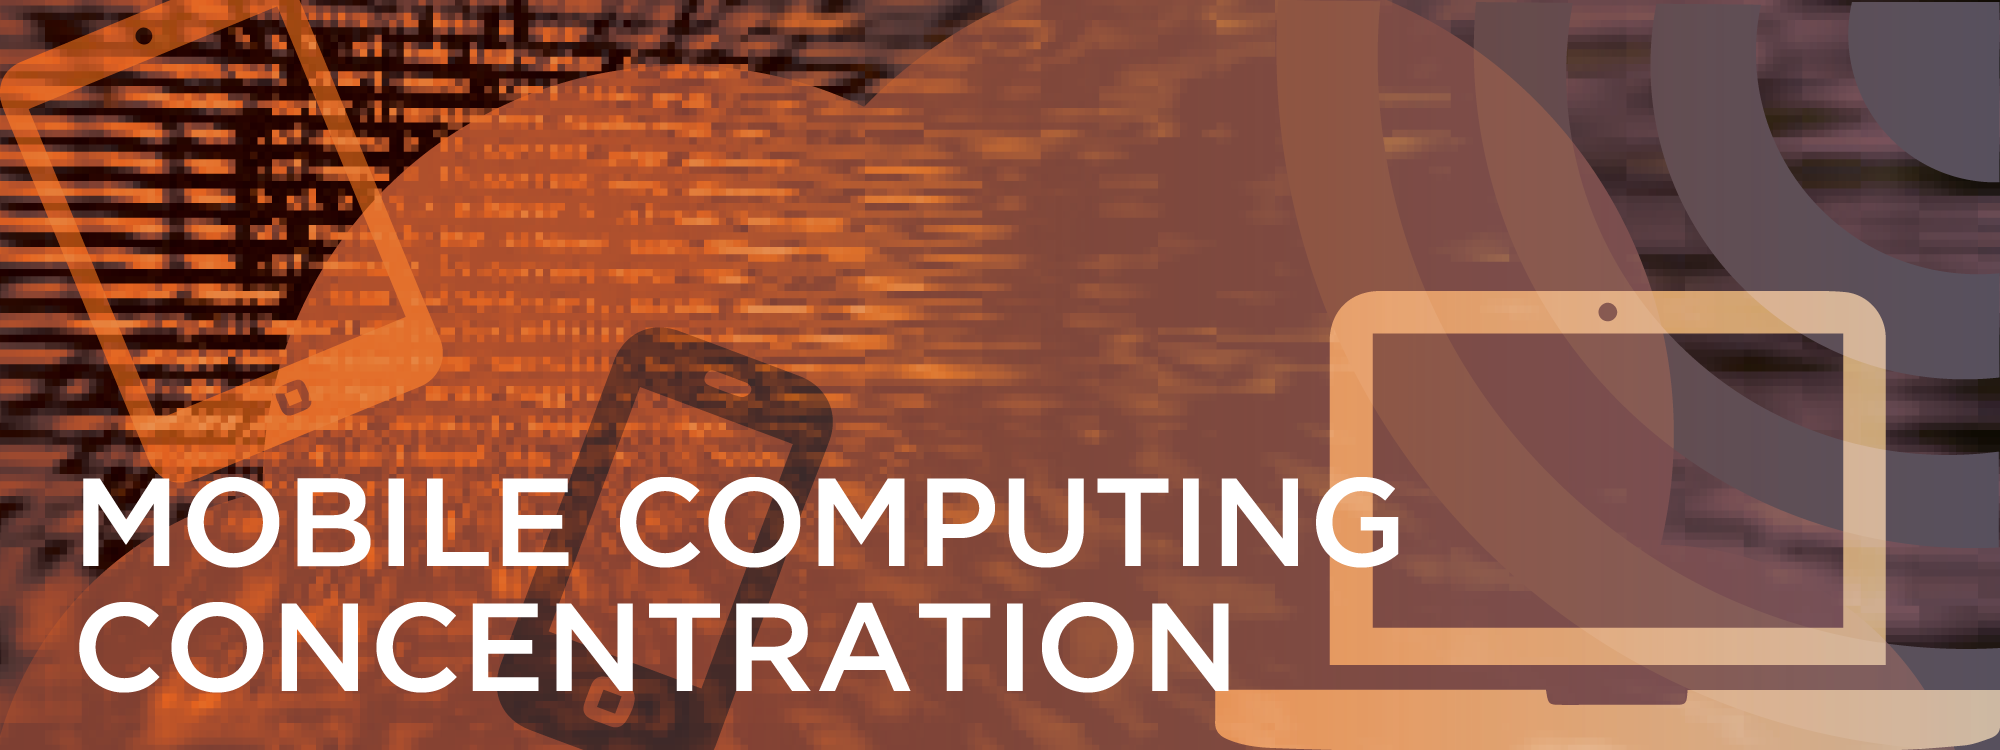 Mobile computing has revoluntionized the way we interact with the world. This concentration explores important topics in mobile computing, including Internet and wireless networks, mobile app development, cloud computing, network security, and Internet of Things. These topics are applicable to a virtually endless array of industries.